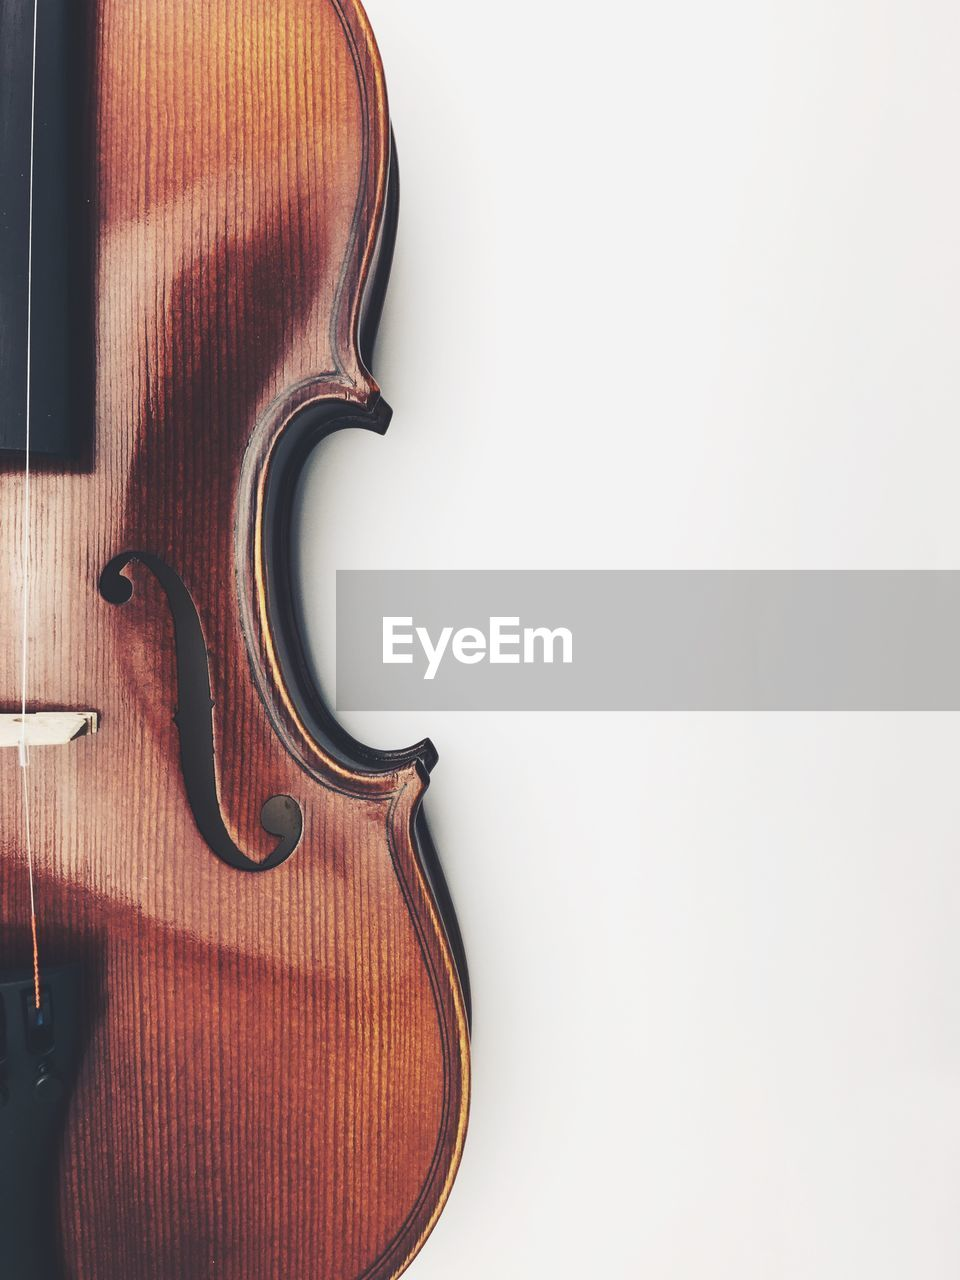 musical instrument, string instrument, musical equipment, music, arts culture and entertainment, violin, white background, musical instrument string, wood - material, indoors, studio shot, string, copy space, brown, close-up, no people, single object, still life, cut out, wall - building feature, classical style, double bass